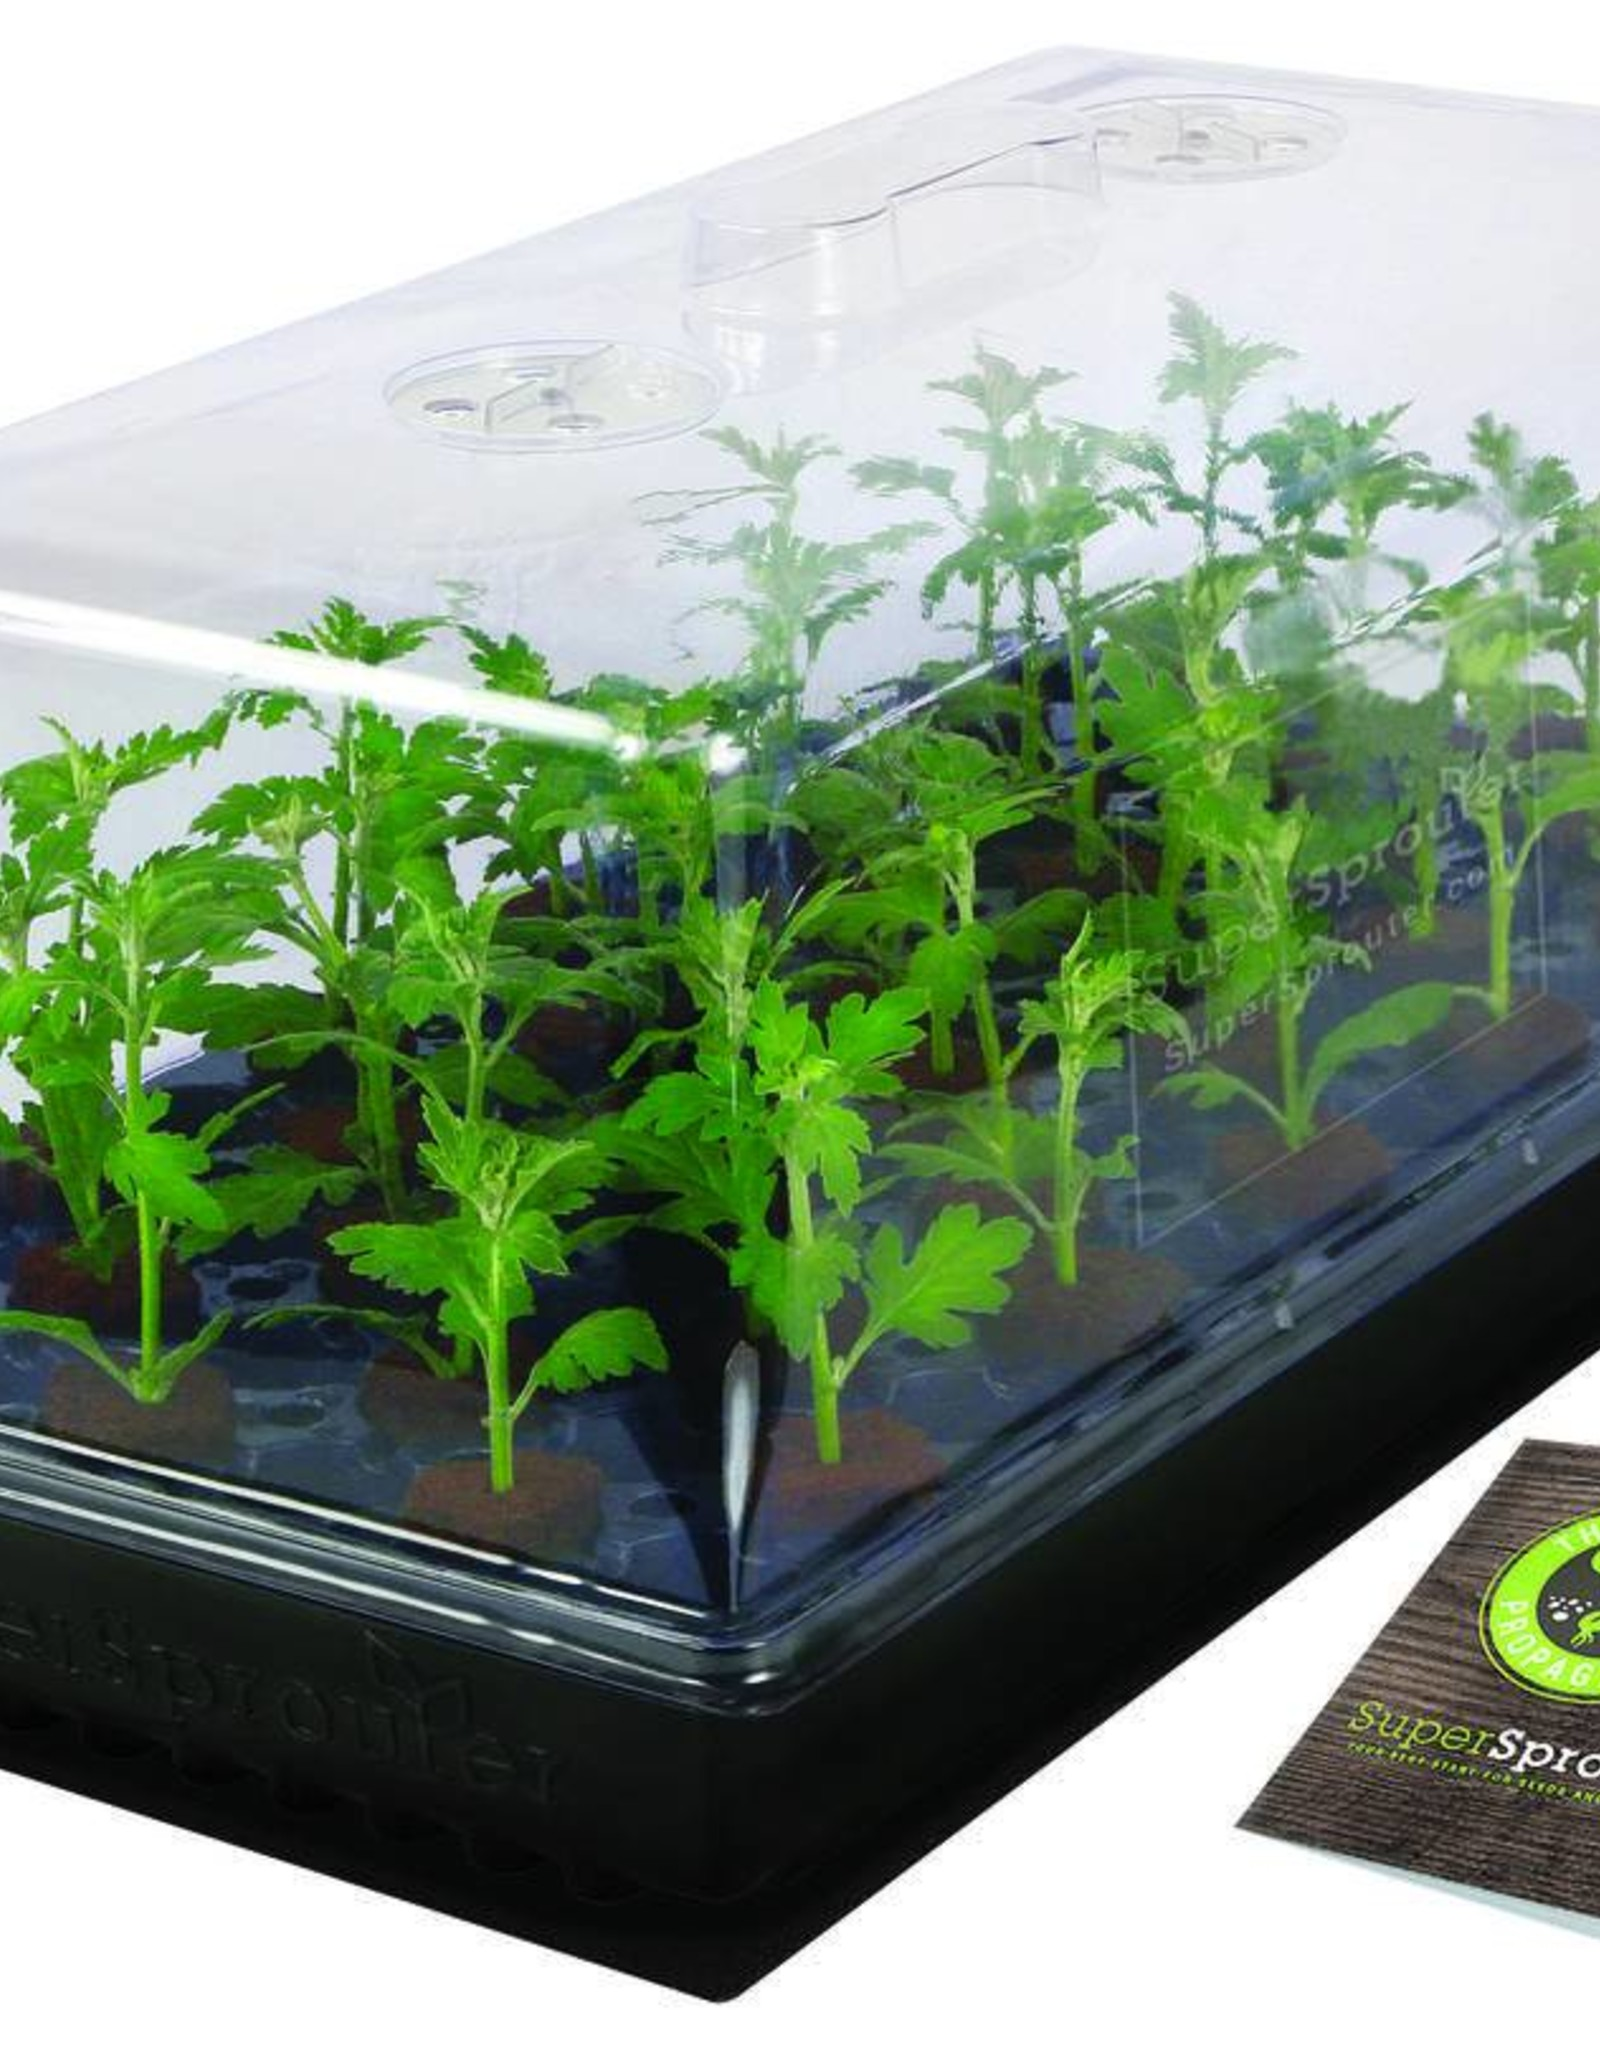 SUPER SPROUTER Start your growing season early with everything you need in this kit to start your seedlings. It is proven that seeds grow better with ambient temperatures 10° - 20° F above room temperature. The Super Sprouter® Seedling Heat Mat will provide even warm te